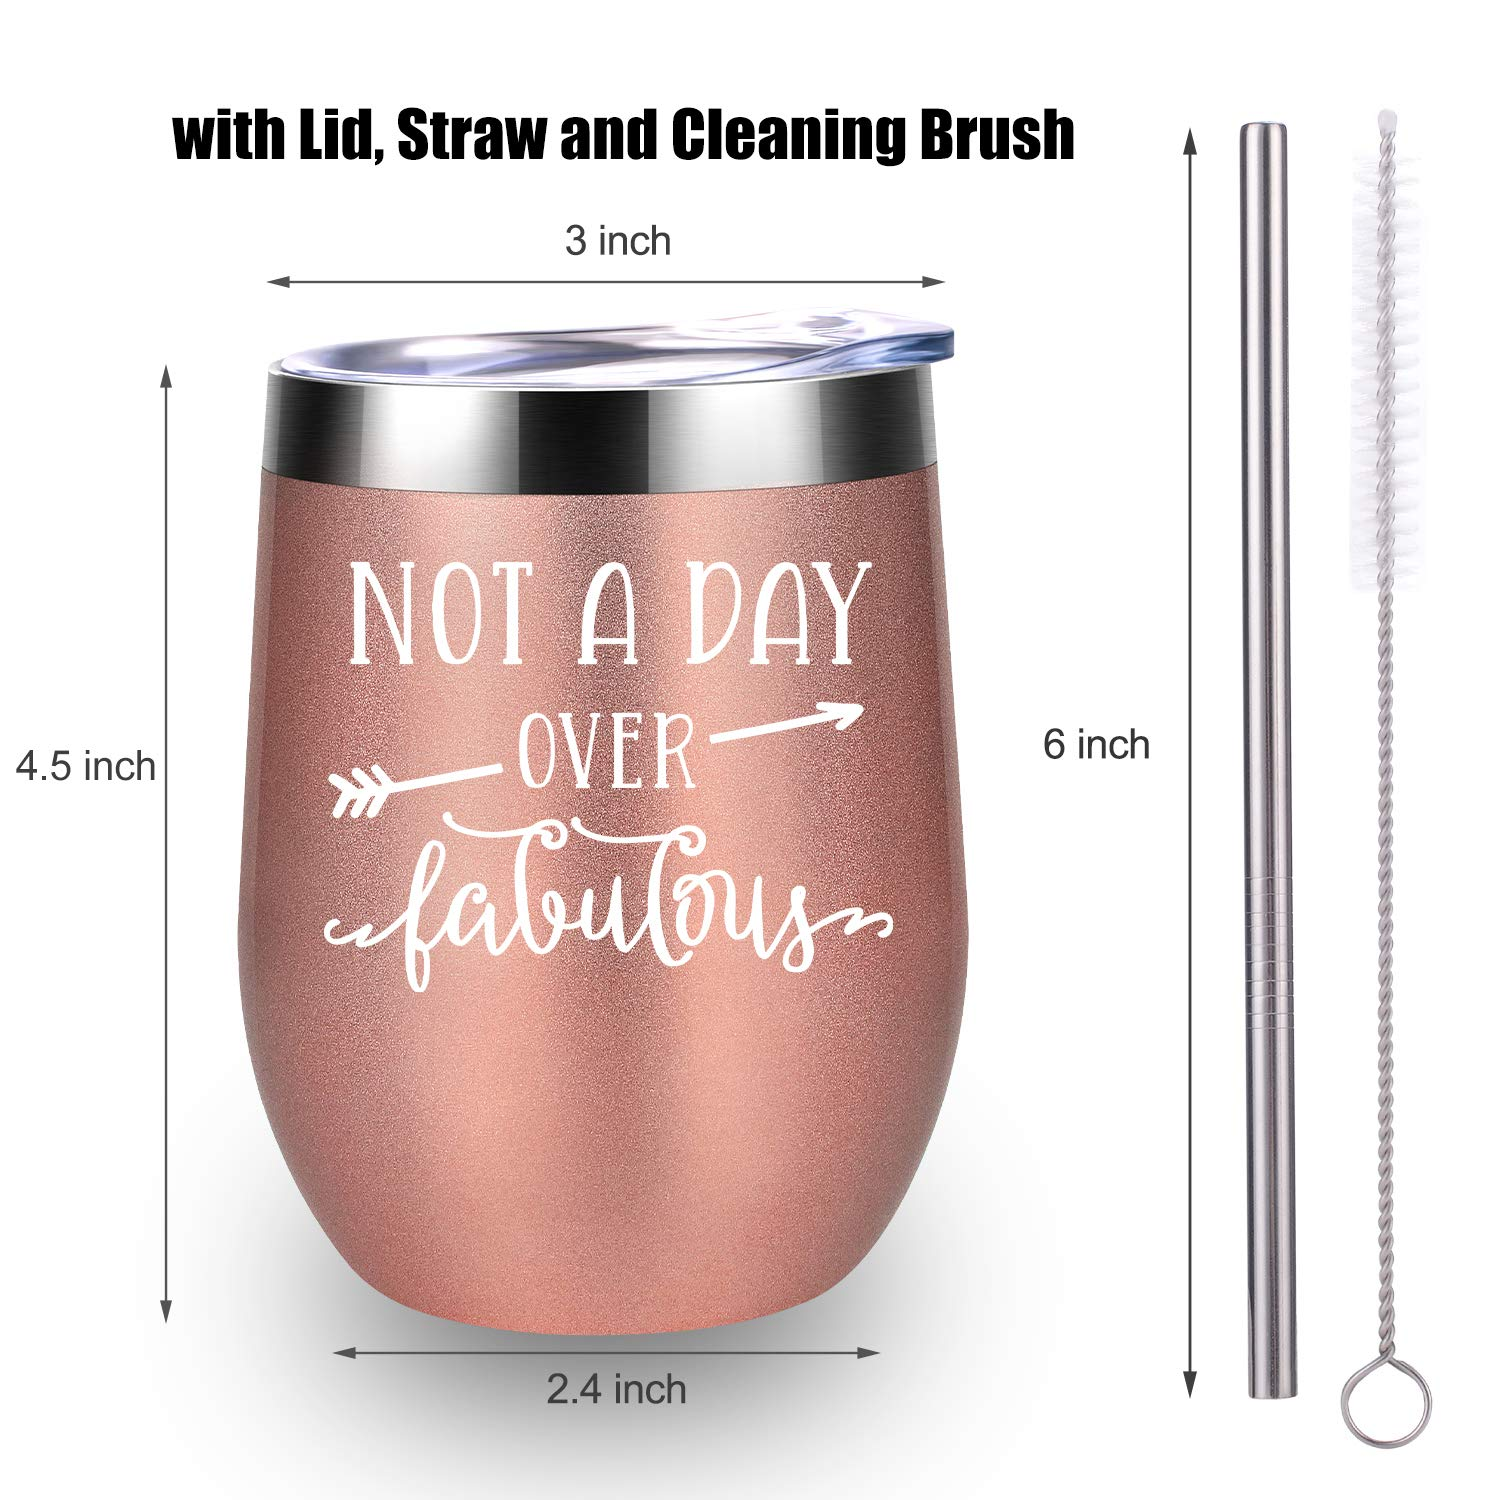 Not a Day Over Fabulous - Fun Birthday Gifts for Women - Funny Birthday Wine Gift Ideas for Her, Best Friend BFF, Mom, Grandma, Wife, Daughter, Sister, Aunt, Coworker - LEADO Birthday Wine Tumbler by LEADO (Image #3)